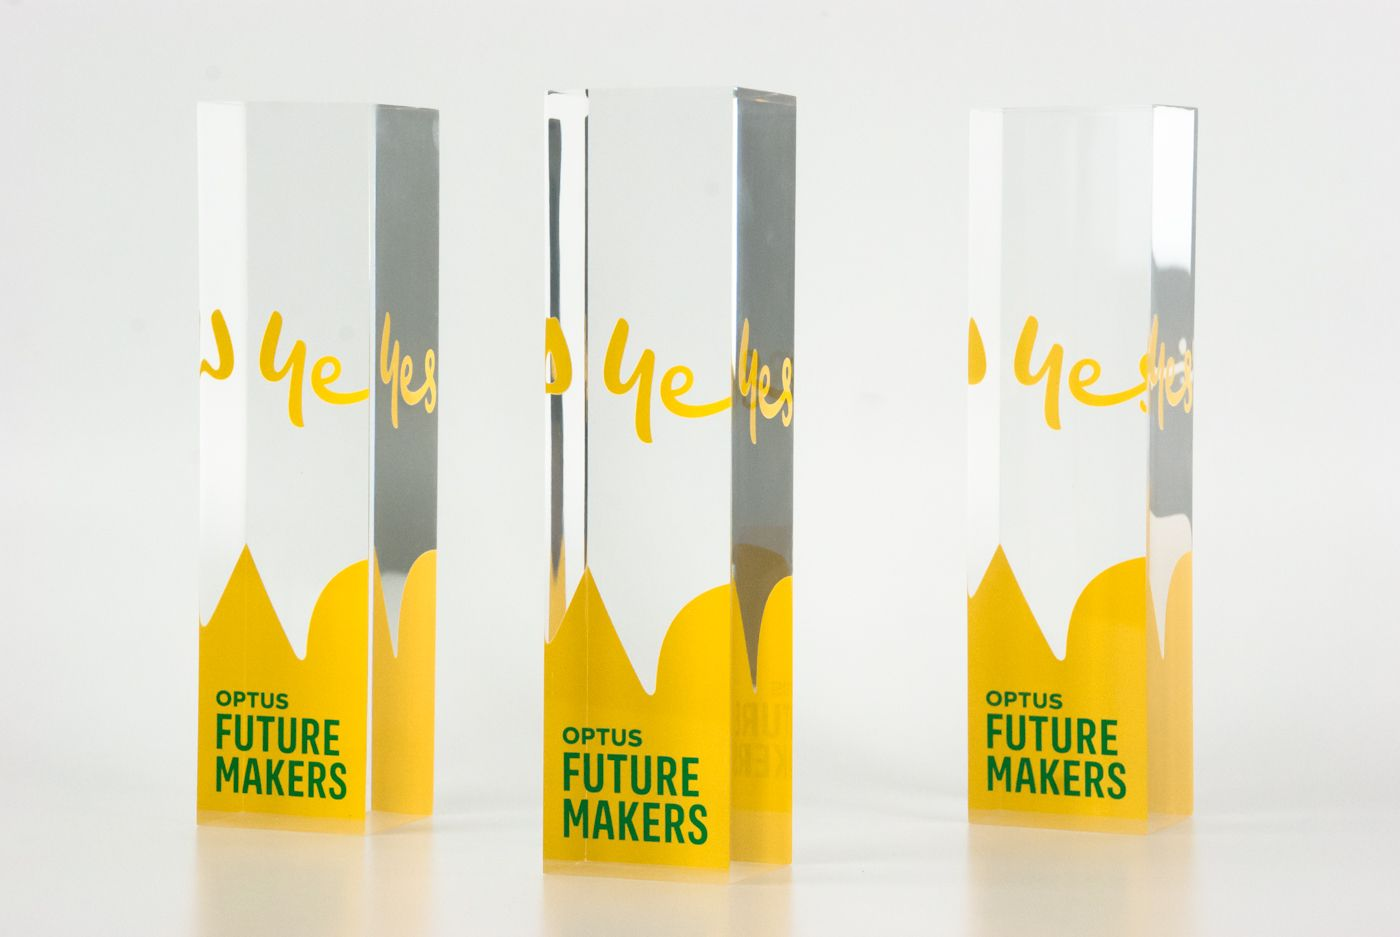 Yes Optus Future Makers